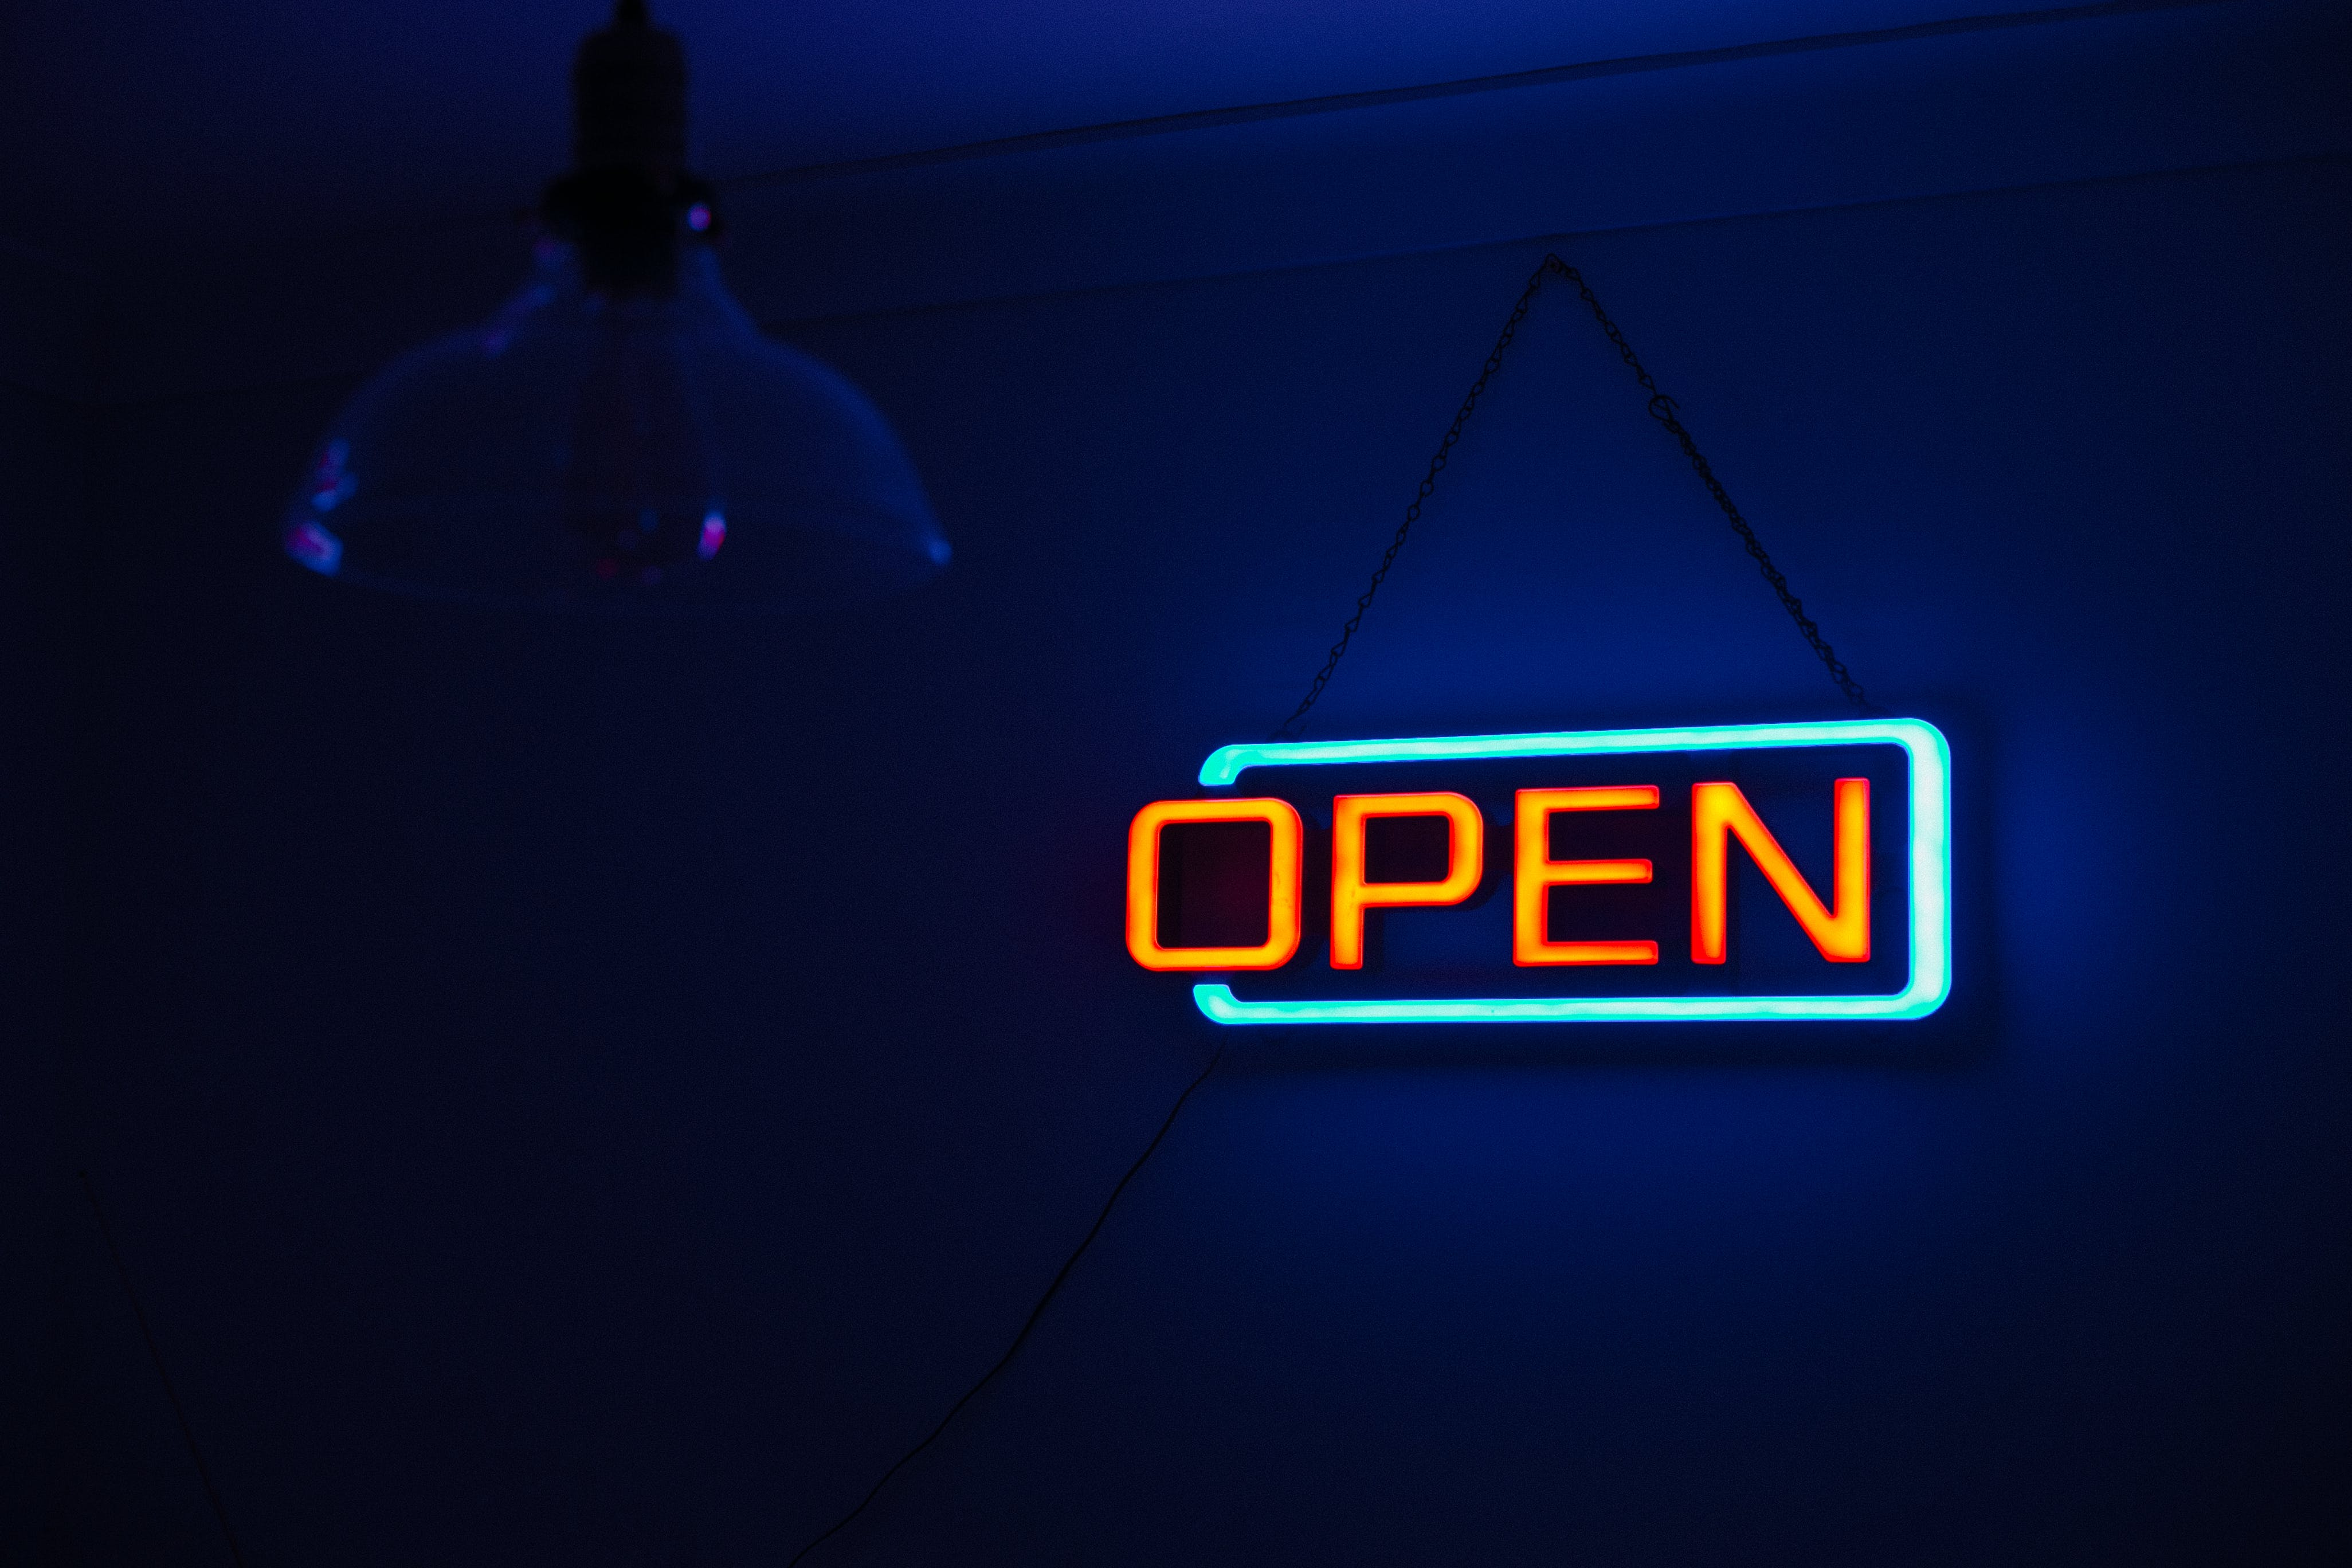 Yellow and Teal Open Neon Signage